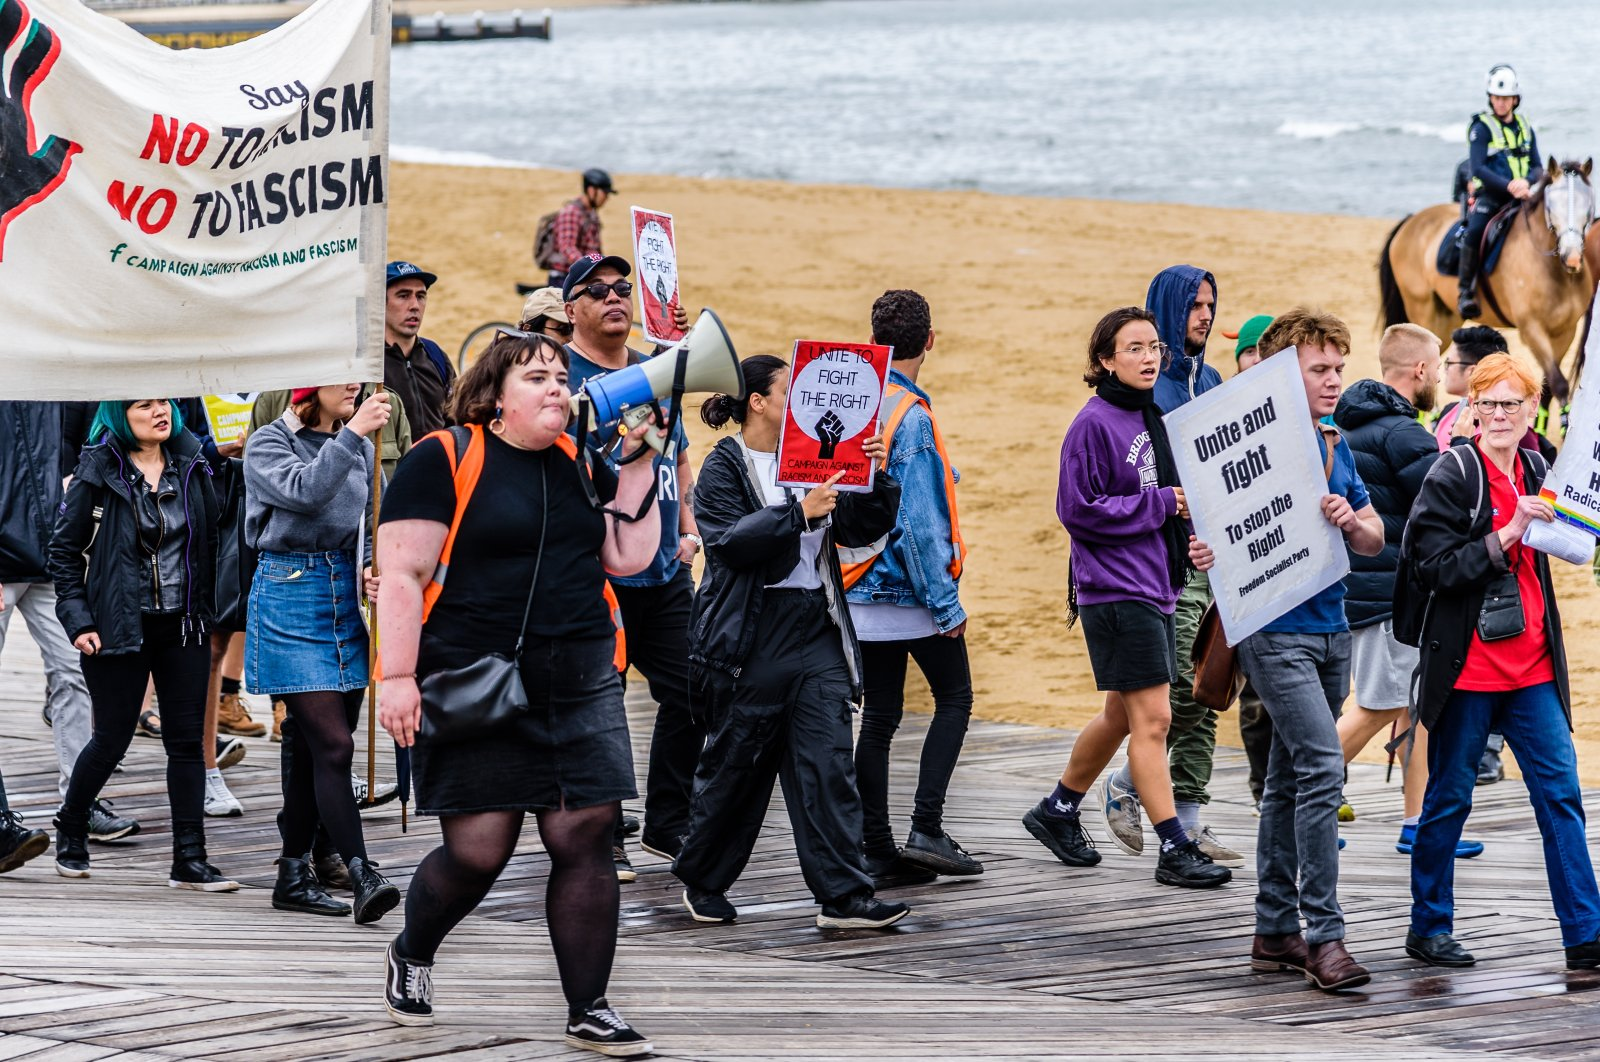 Left and right-wing political groups face off against each other at St Kilda beach while Victoria Police attempt to keep them apart, Melbourne, Victoria, Australia, Jan. 5, 2019.